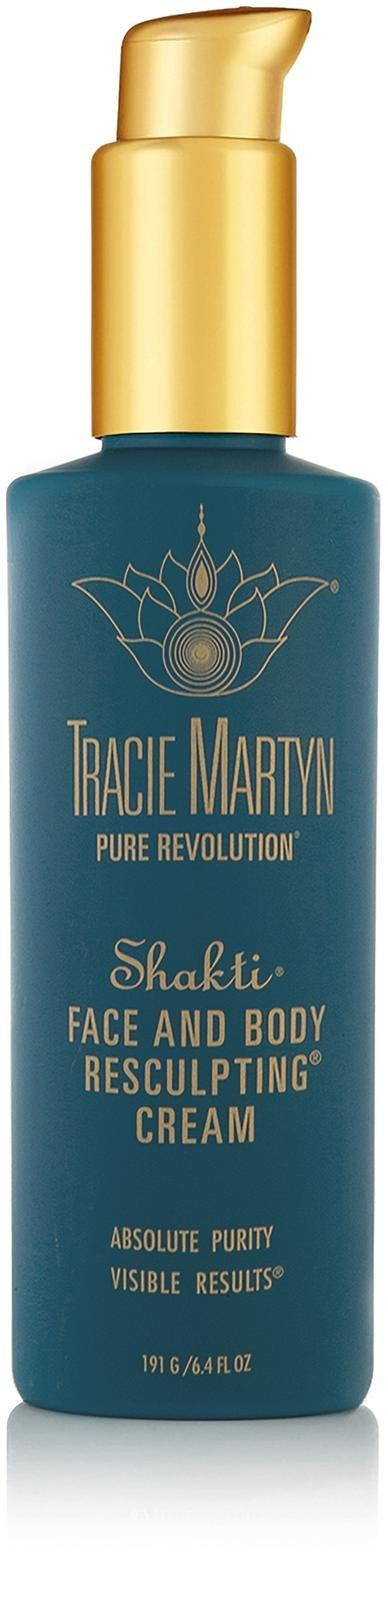 Tracie Martyn Shakti Face And Body Resculpting Cream